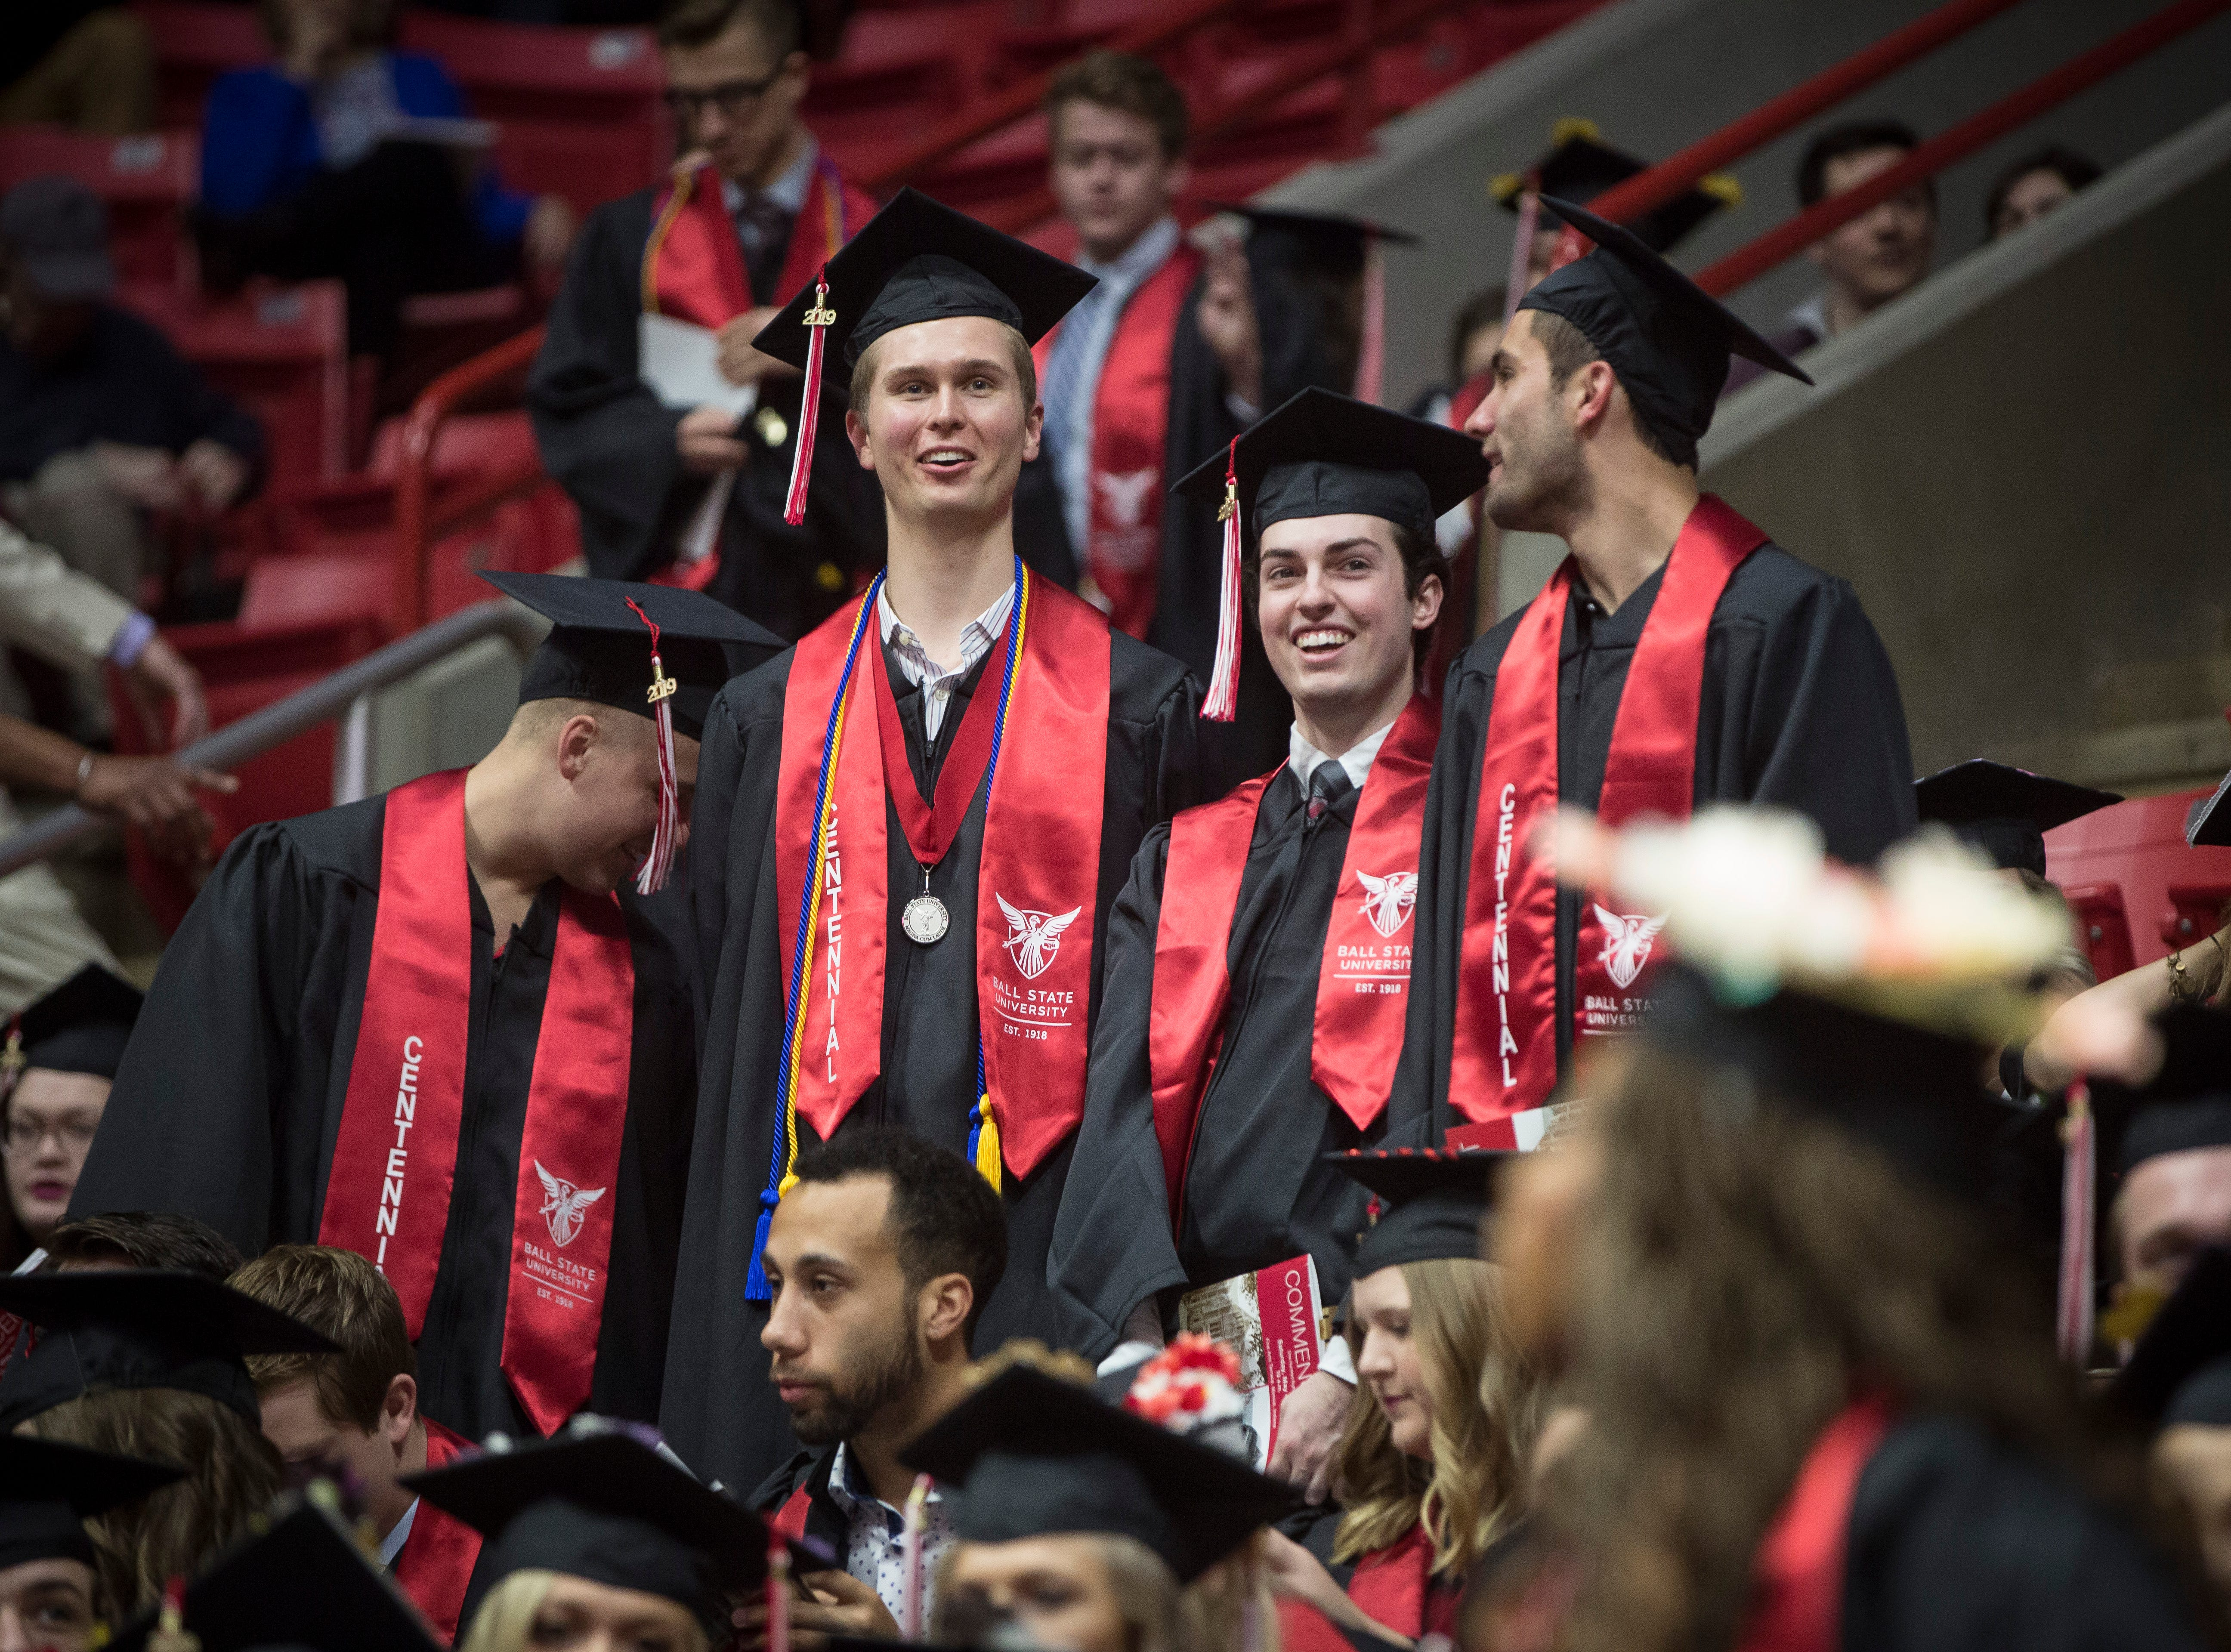 Graduates from Ball State university are recognized for their achievements on May 4 during Ball State University's Spring Commencement inside Worthen Arena. Indiana Governor Eric Holcomb gave the commencement address.